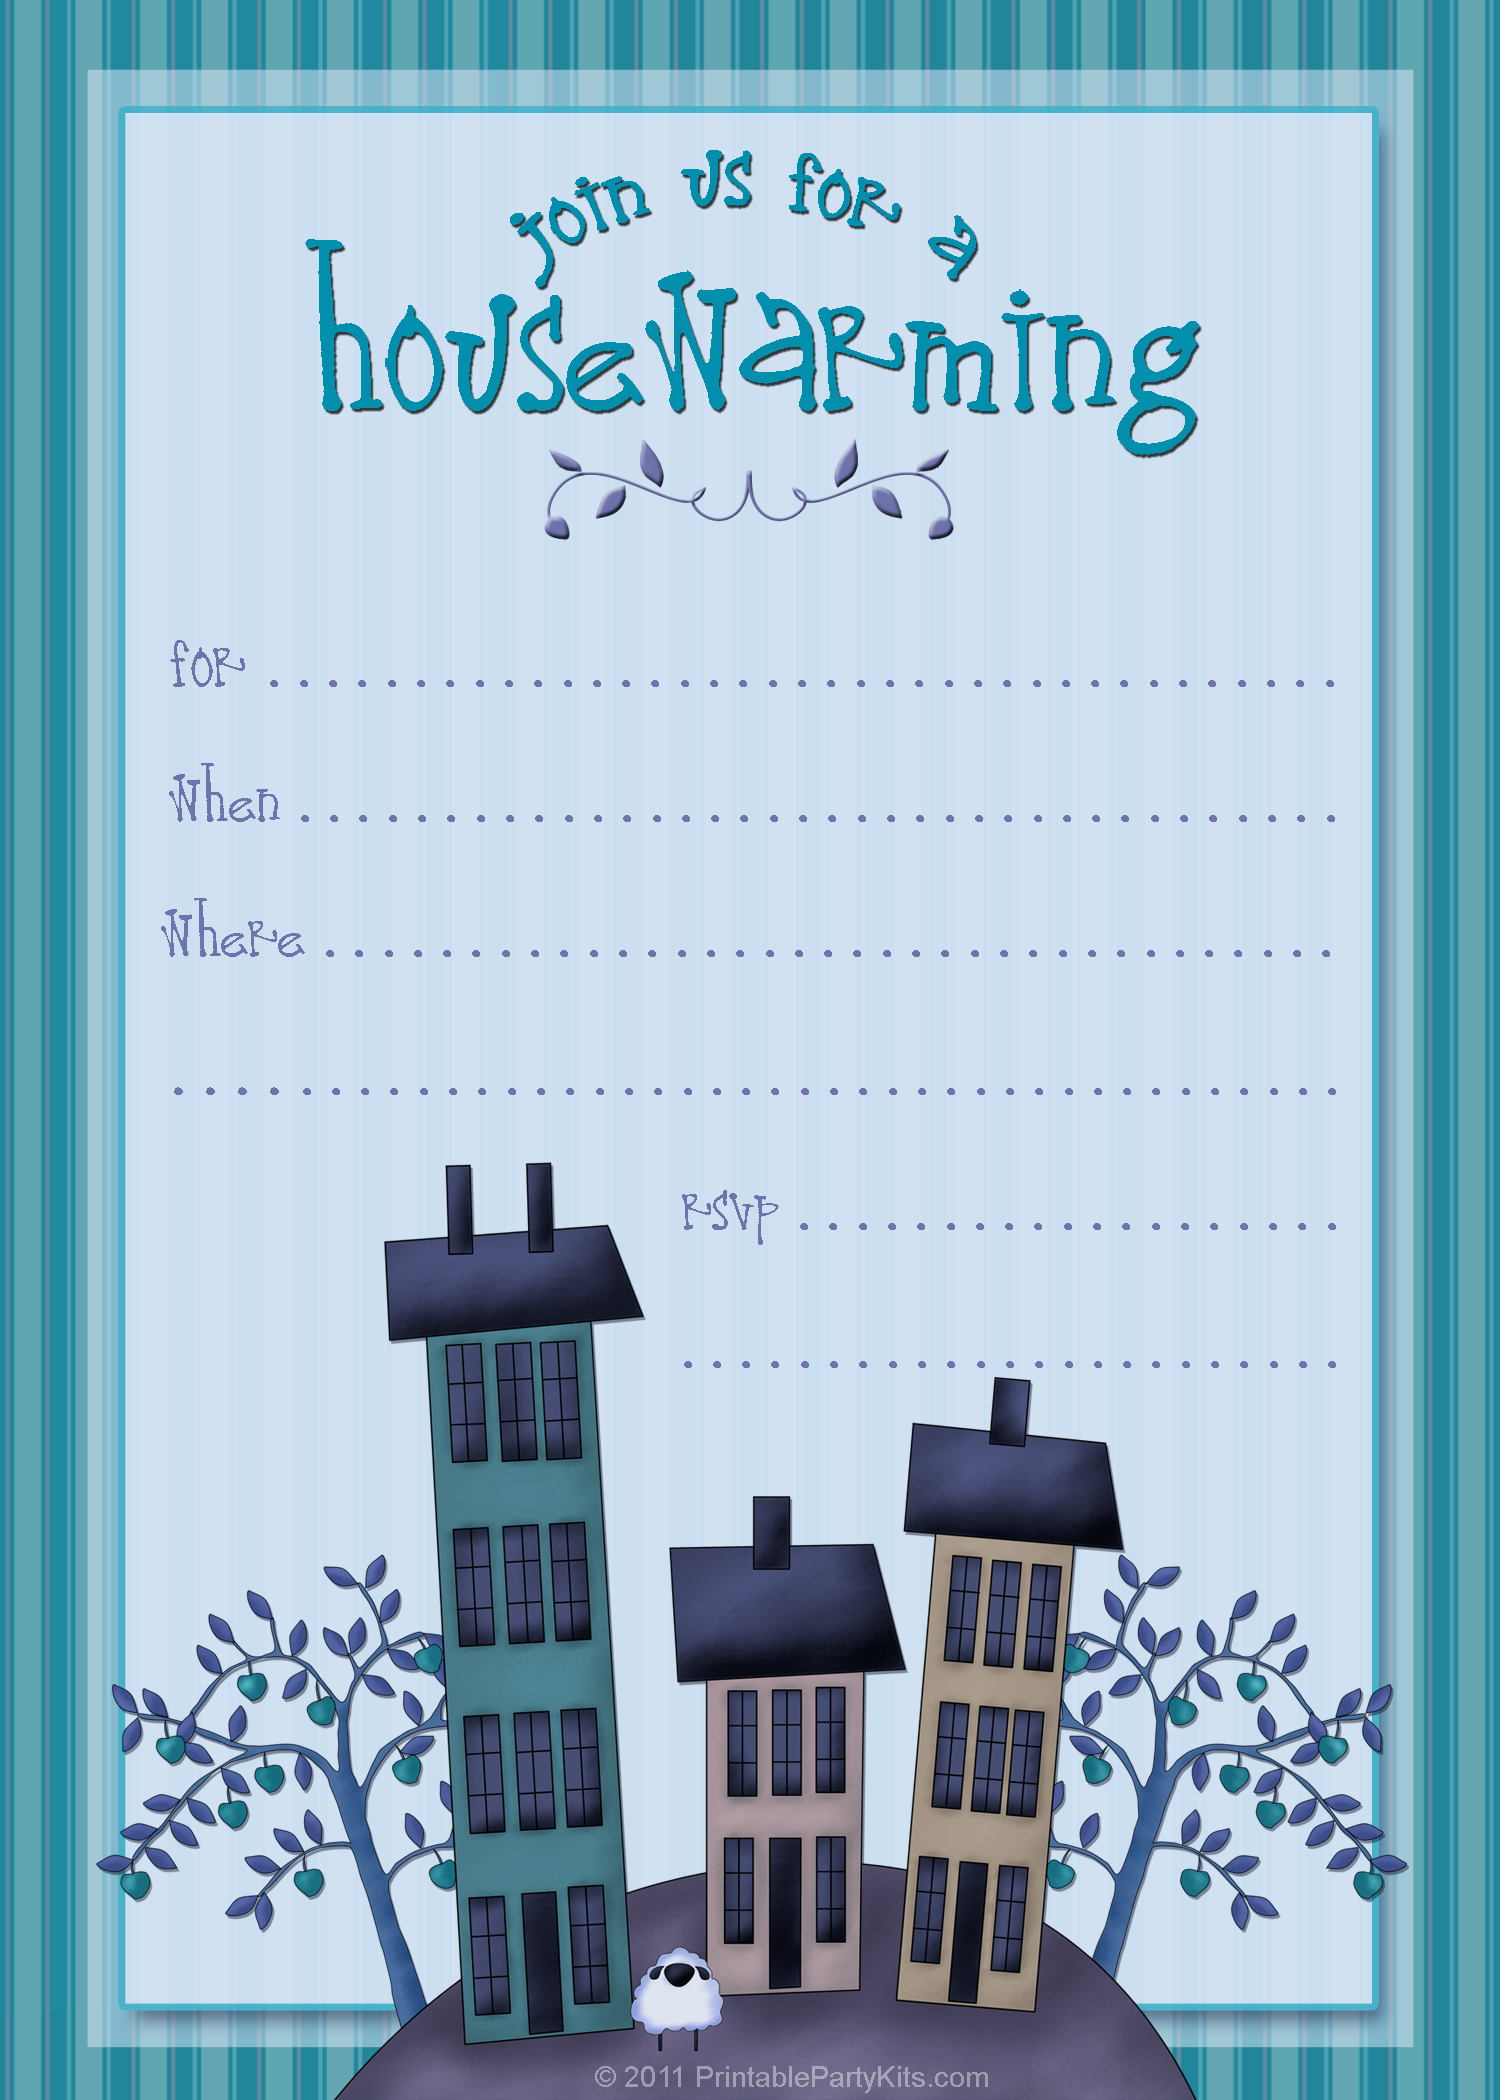 7 Images of Free Printable House Warming Invitations